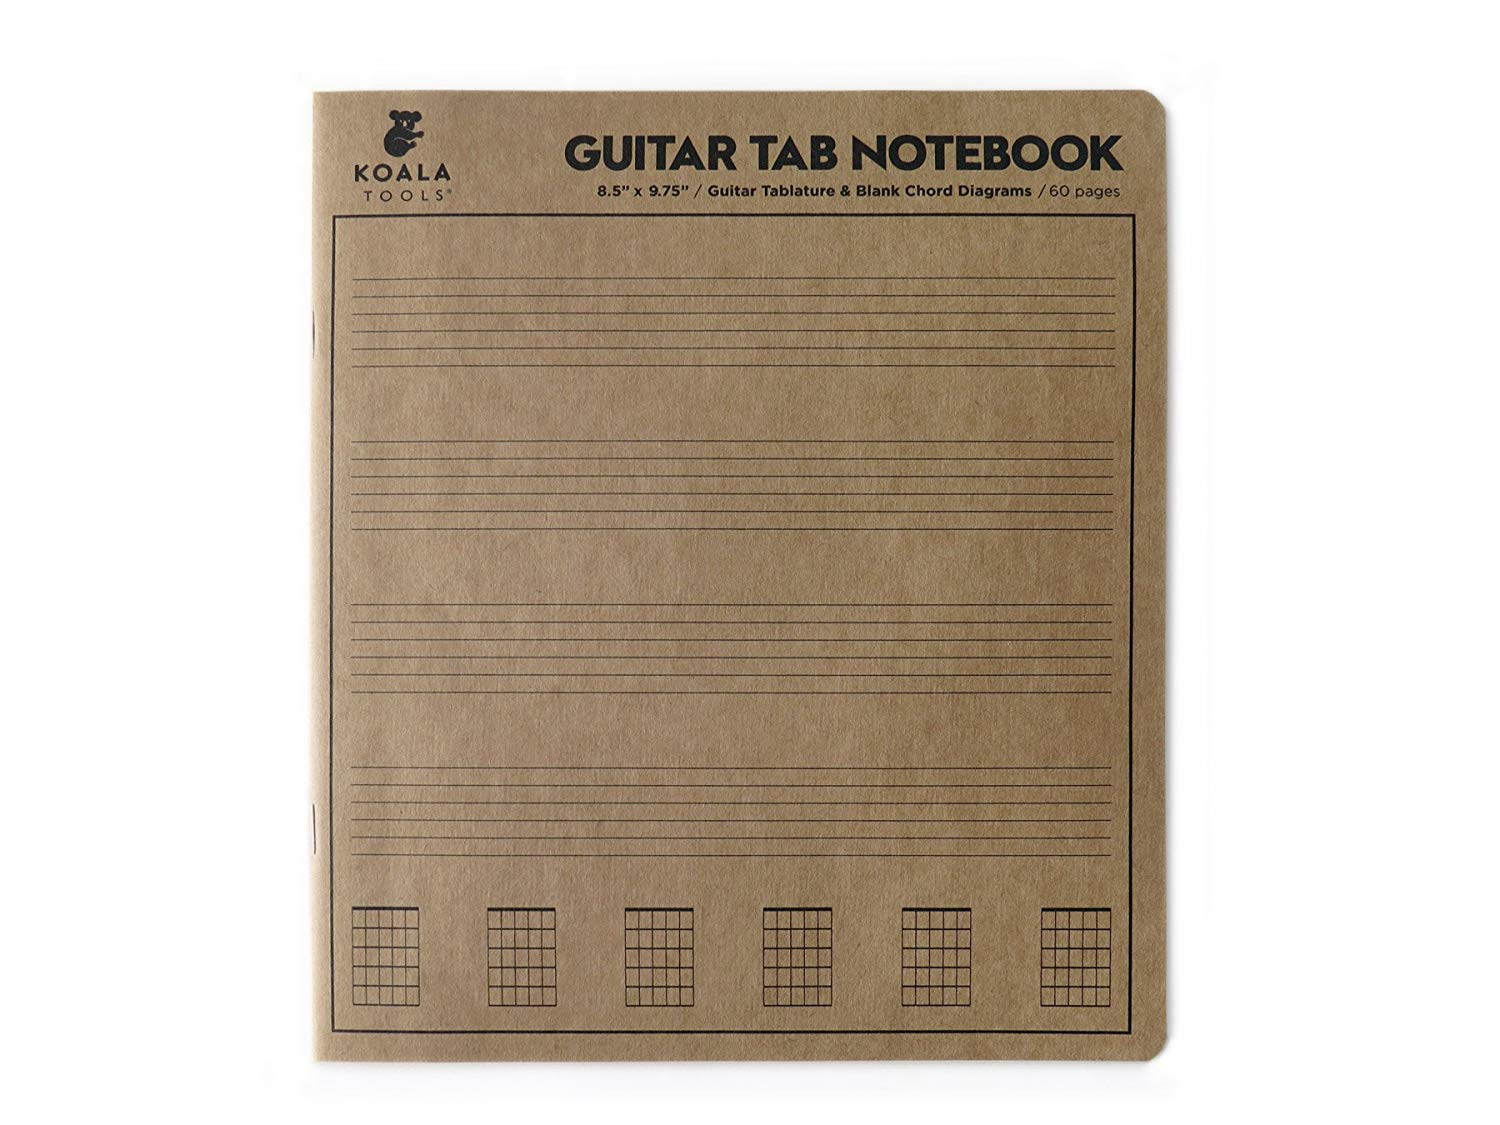 3 Pack Koala Tools Sheets for Music Chord Notation - Blank Paper | 8.5 x 9.75 60pp Guitar Tablature Guitar Tab Notebook